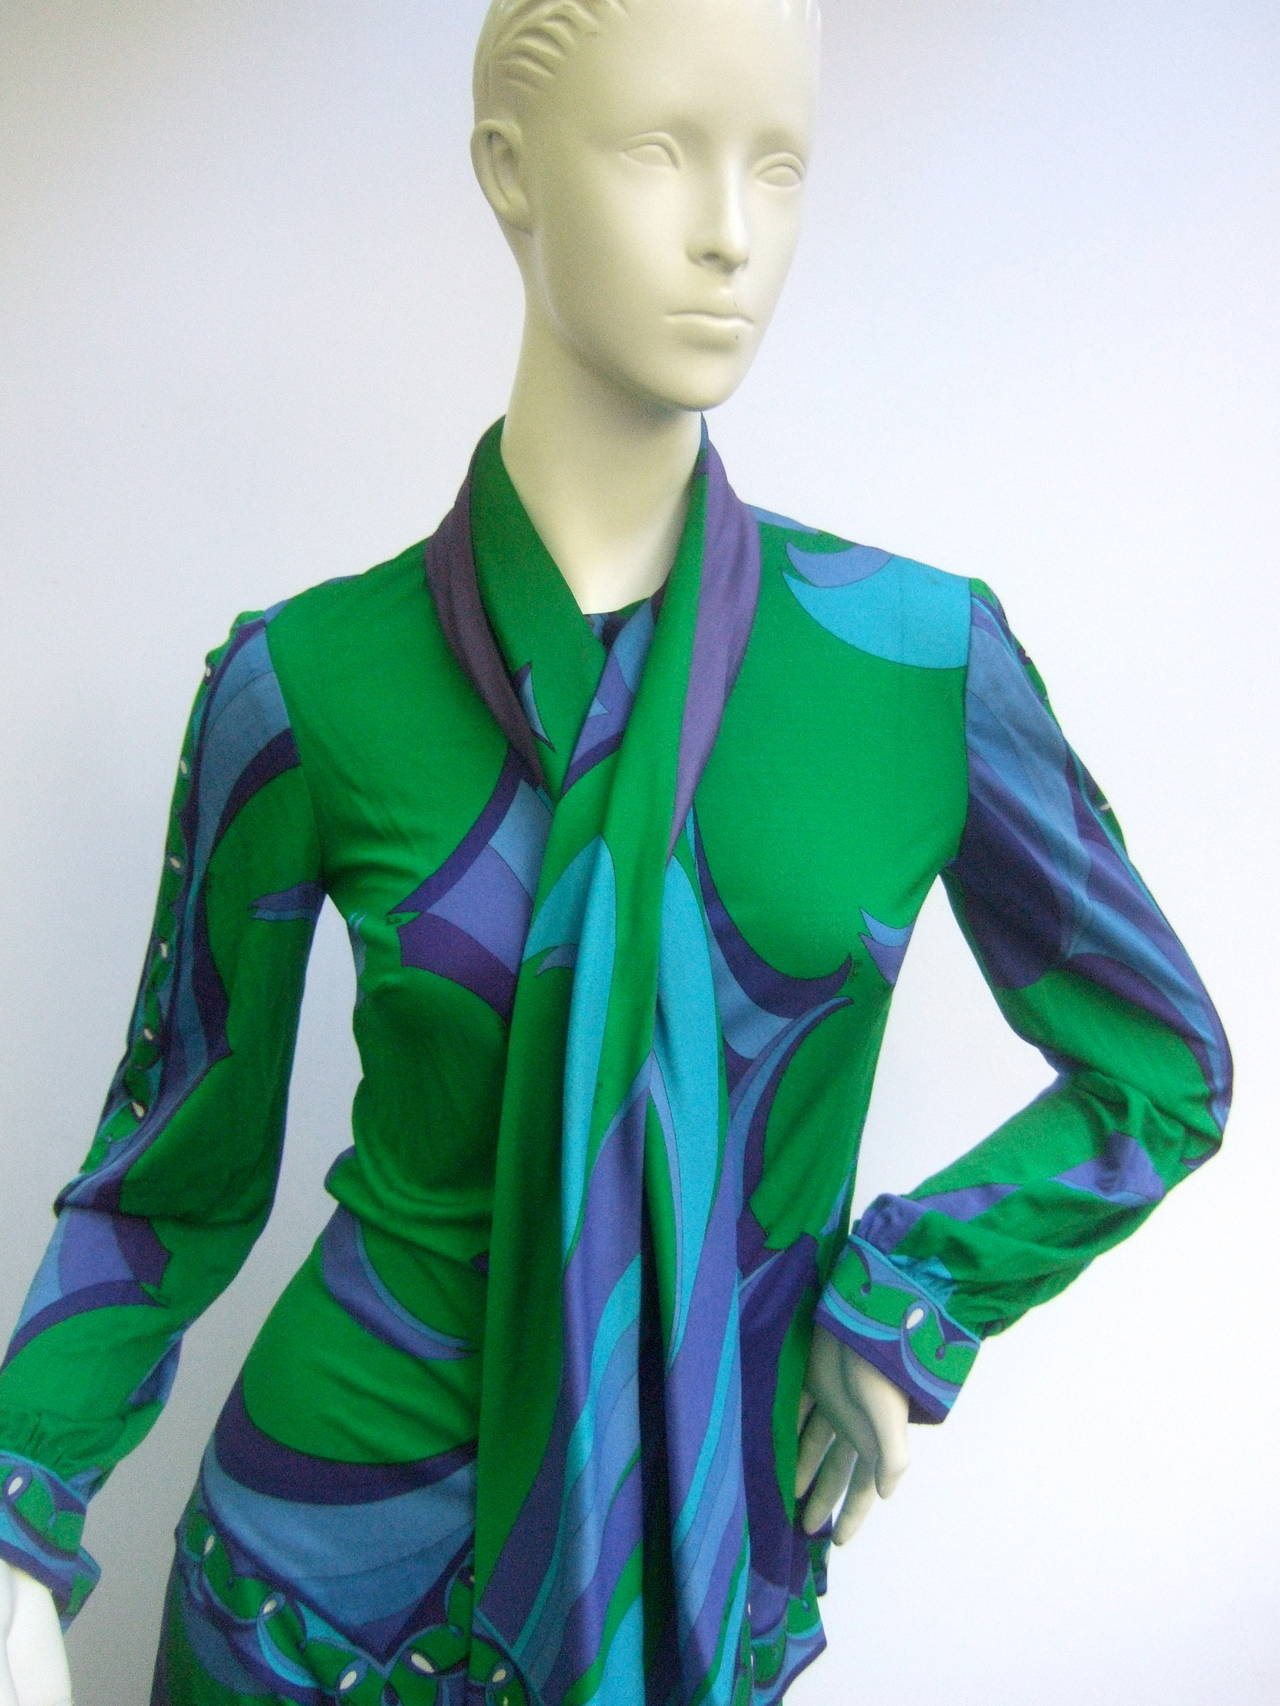 EMILIO PUCCI Silk Jersey Blend Blouse & Skirt Set c 1970 7